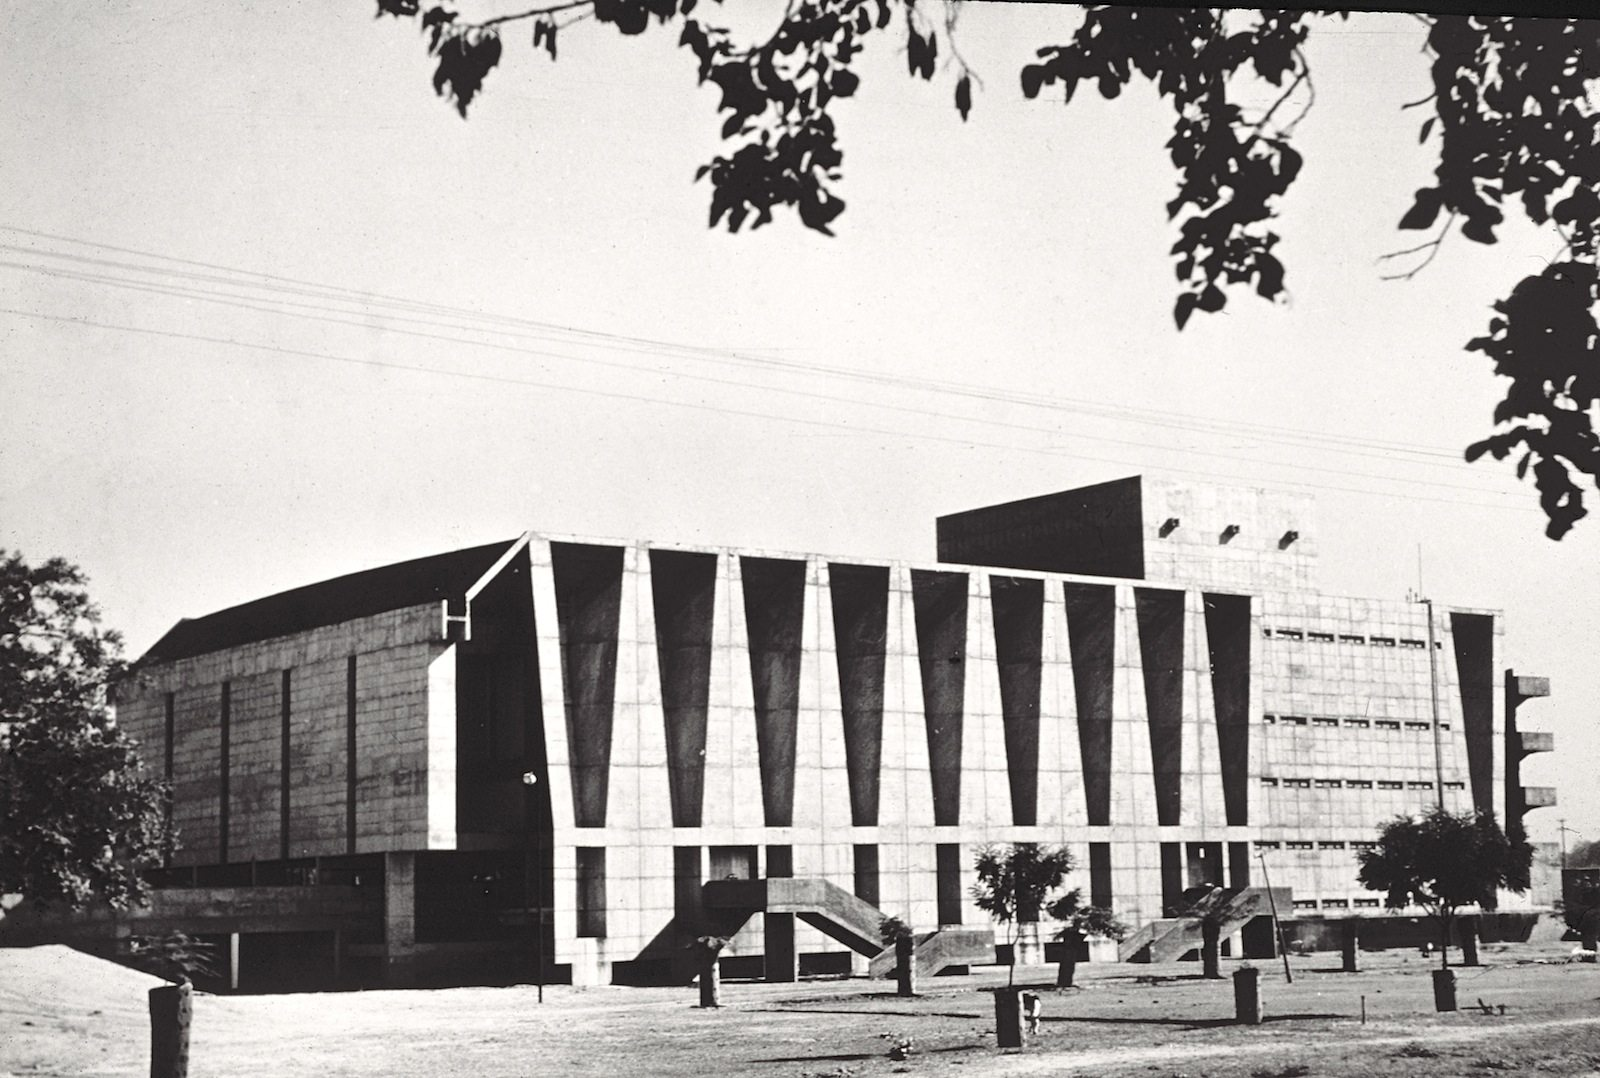 Tagore Memorial Theatre, Ahmedabad, 1965. Architect: B. V. Doshi. Engineer: Mahendra Raj